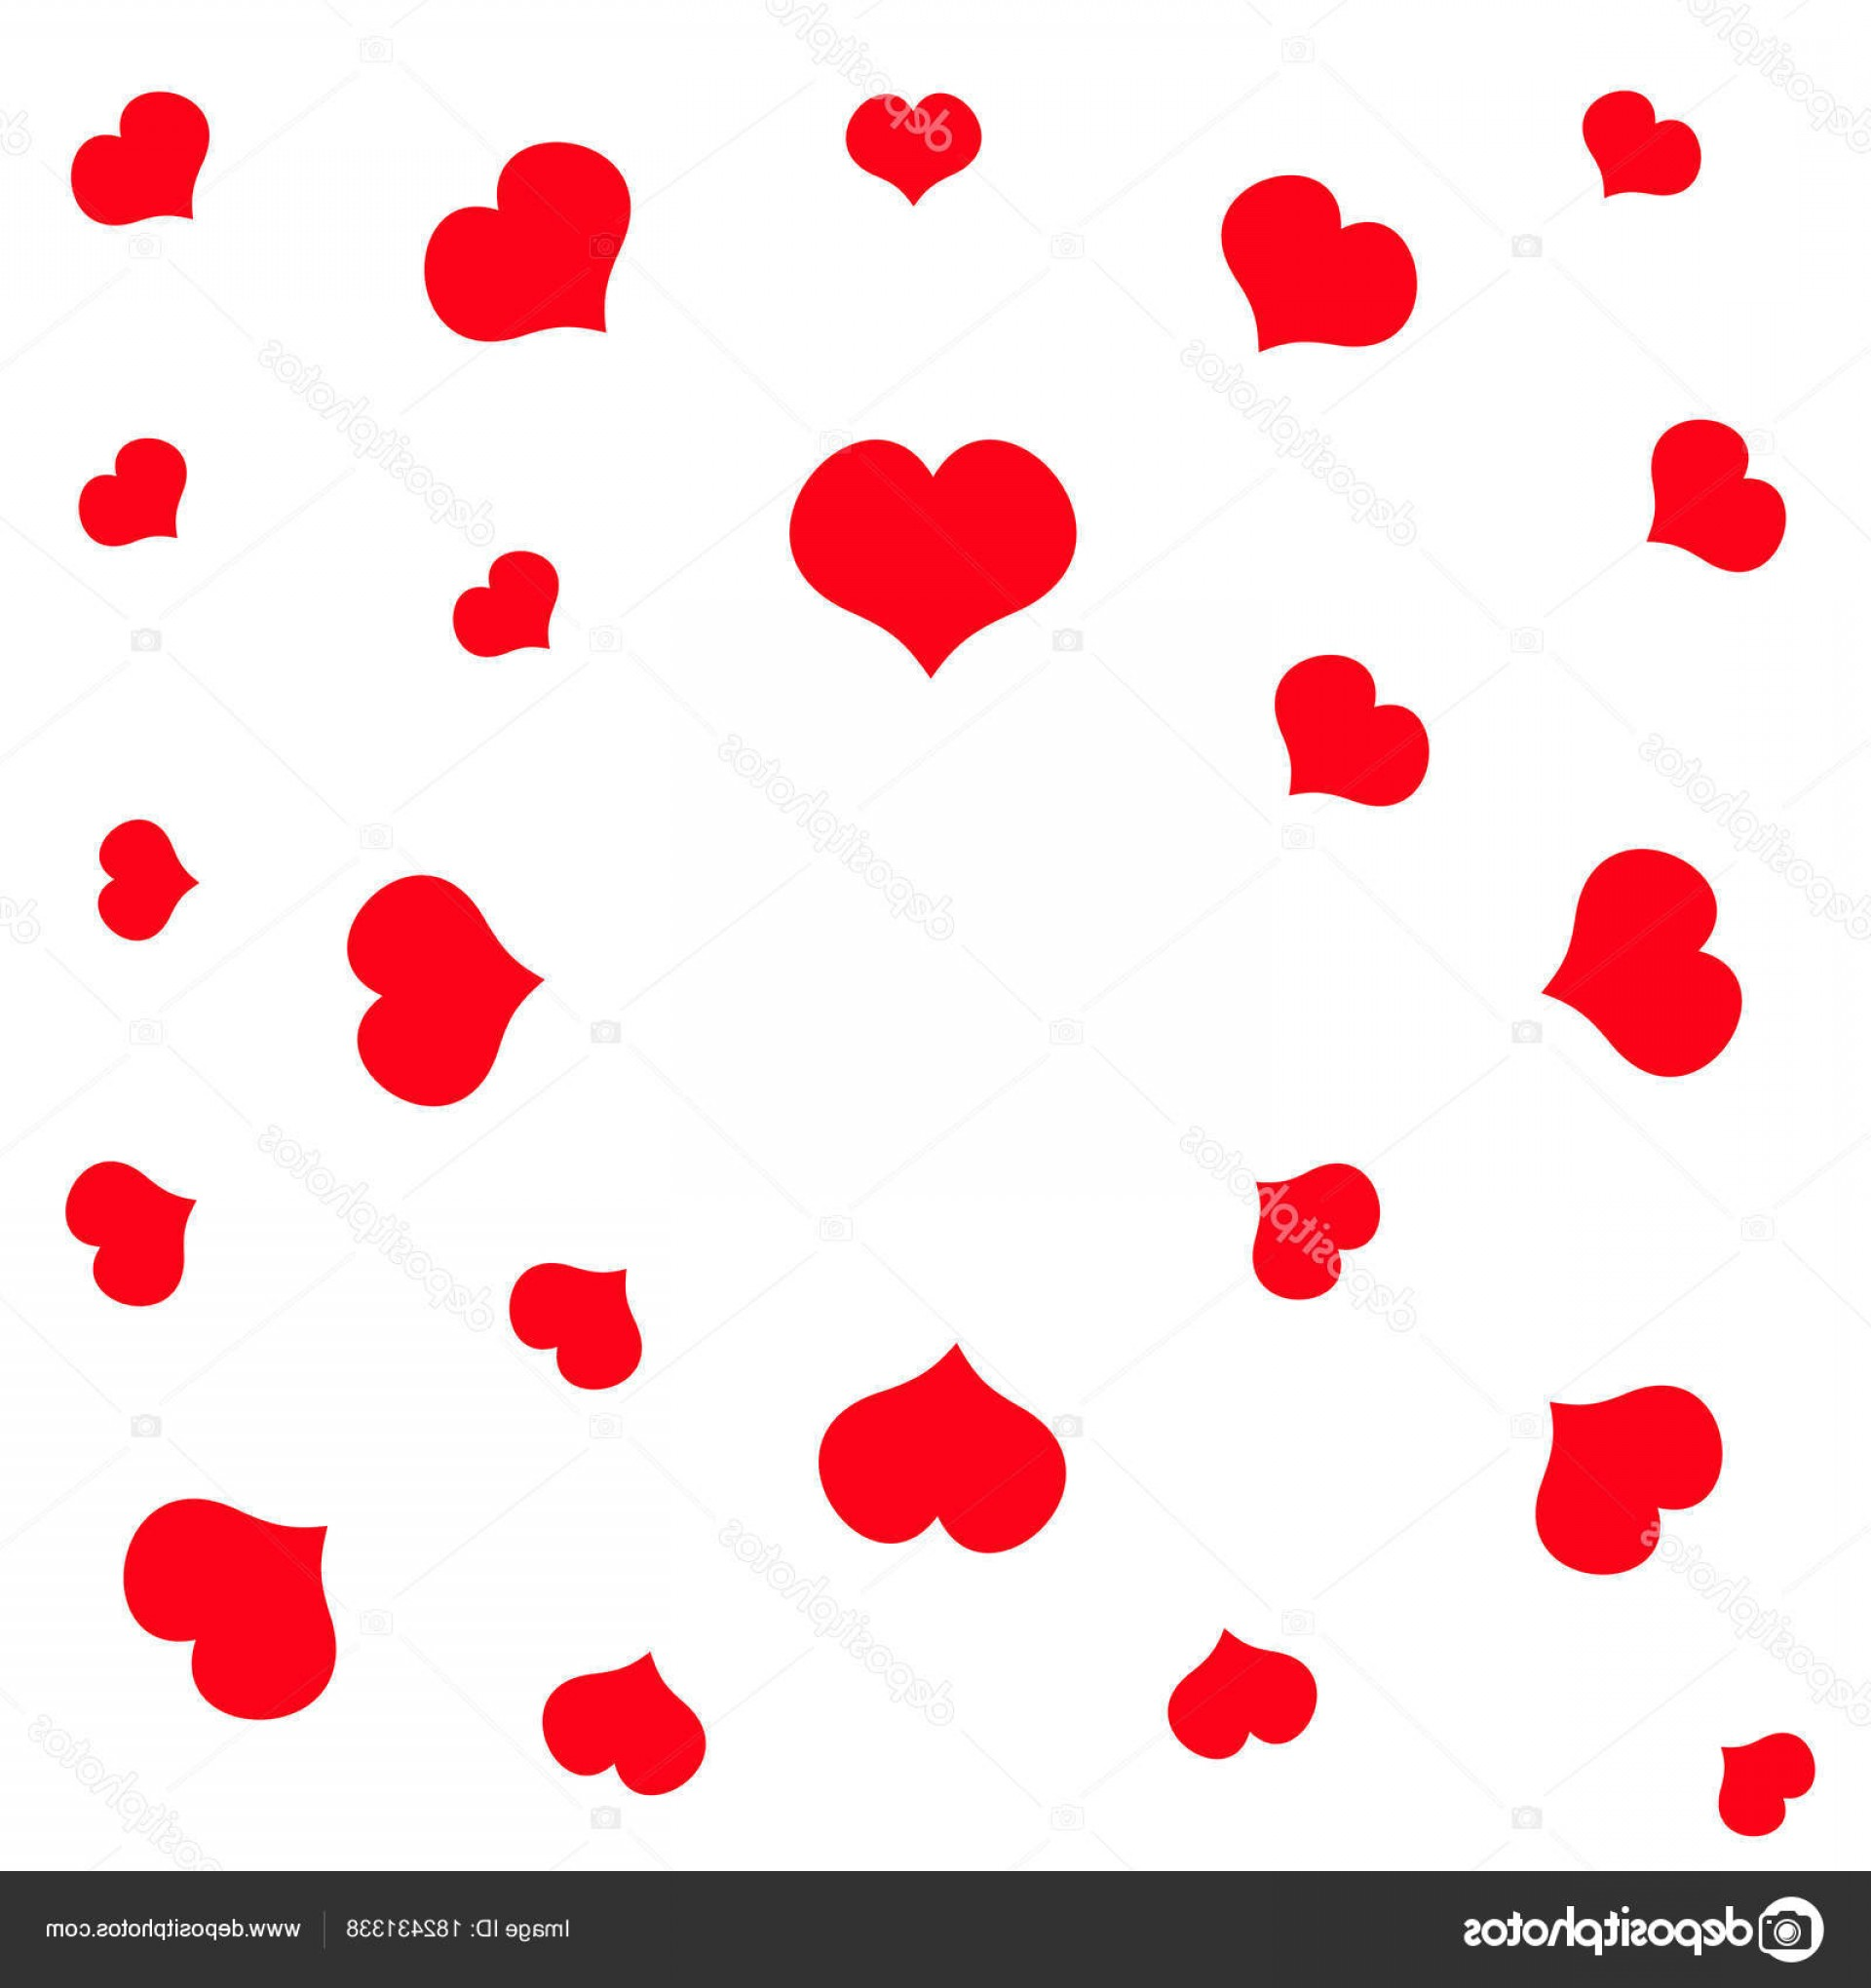 Cool Vector Hearts Pattern Symbol Pattern: Stock Illustration Red Hearts Pattern Happy Valentines